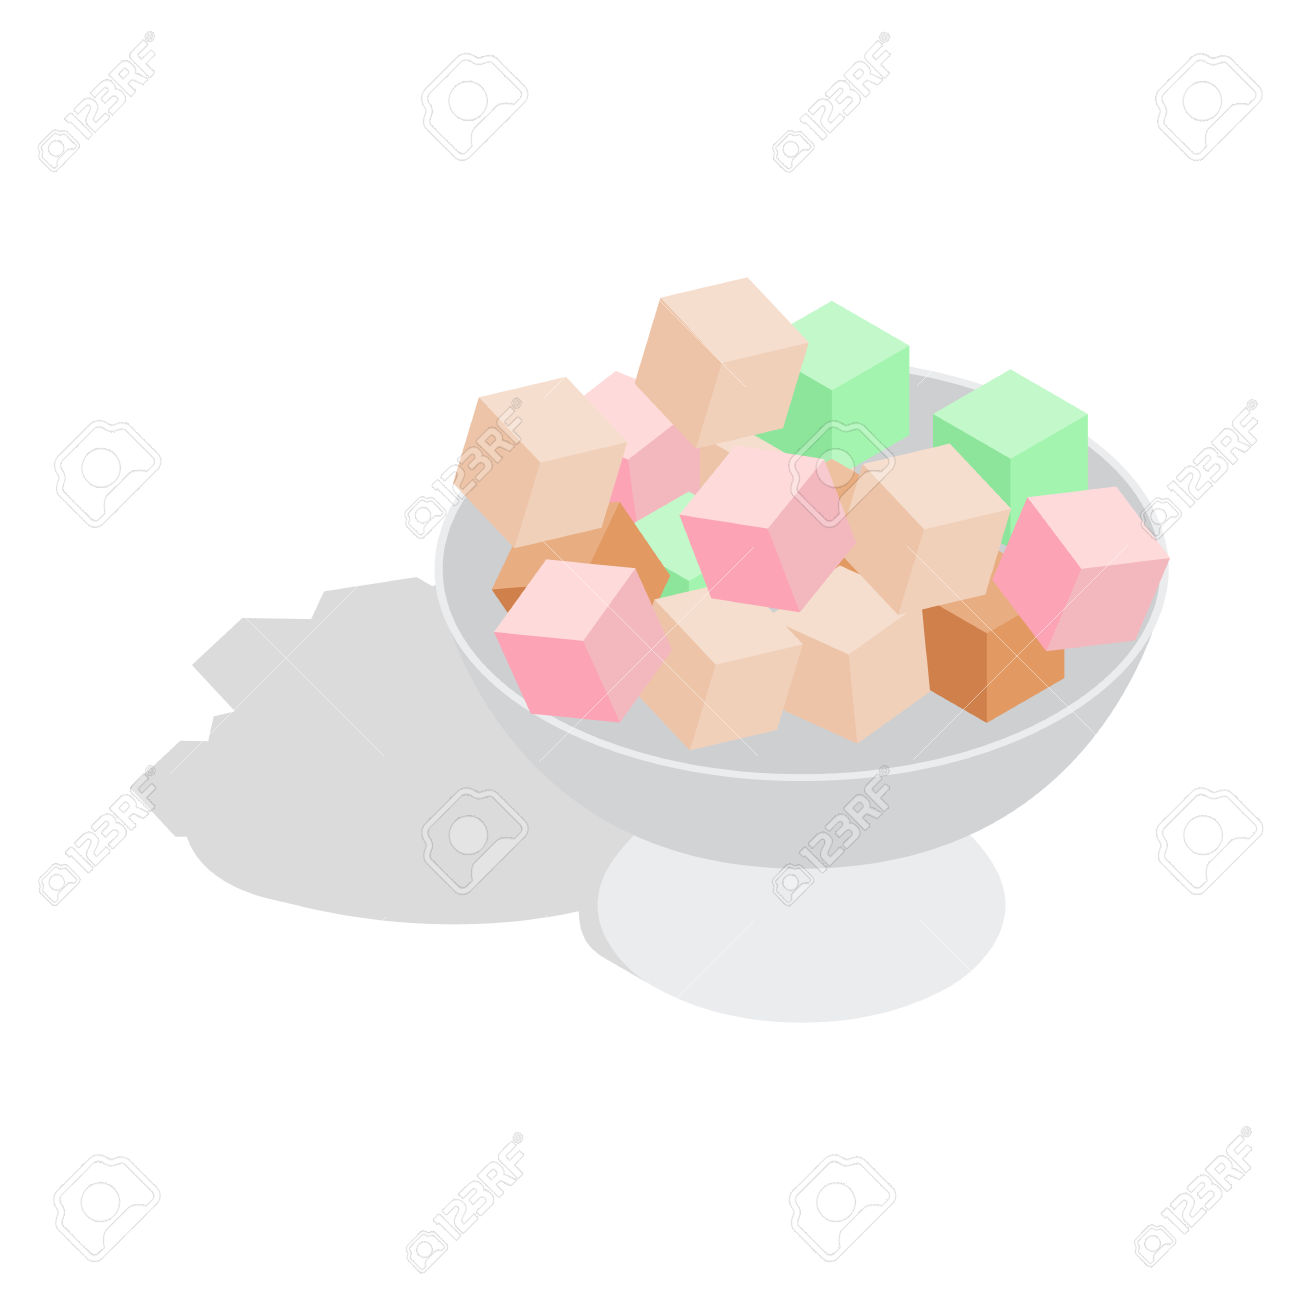 Turkish Delight Icon In Isometric 3d Style On A White Background.